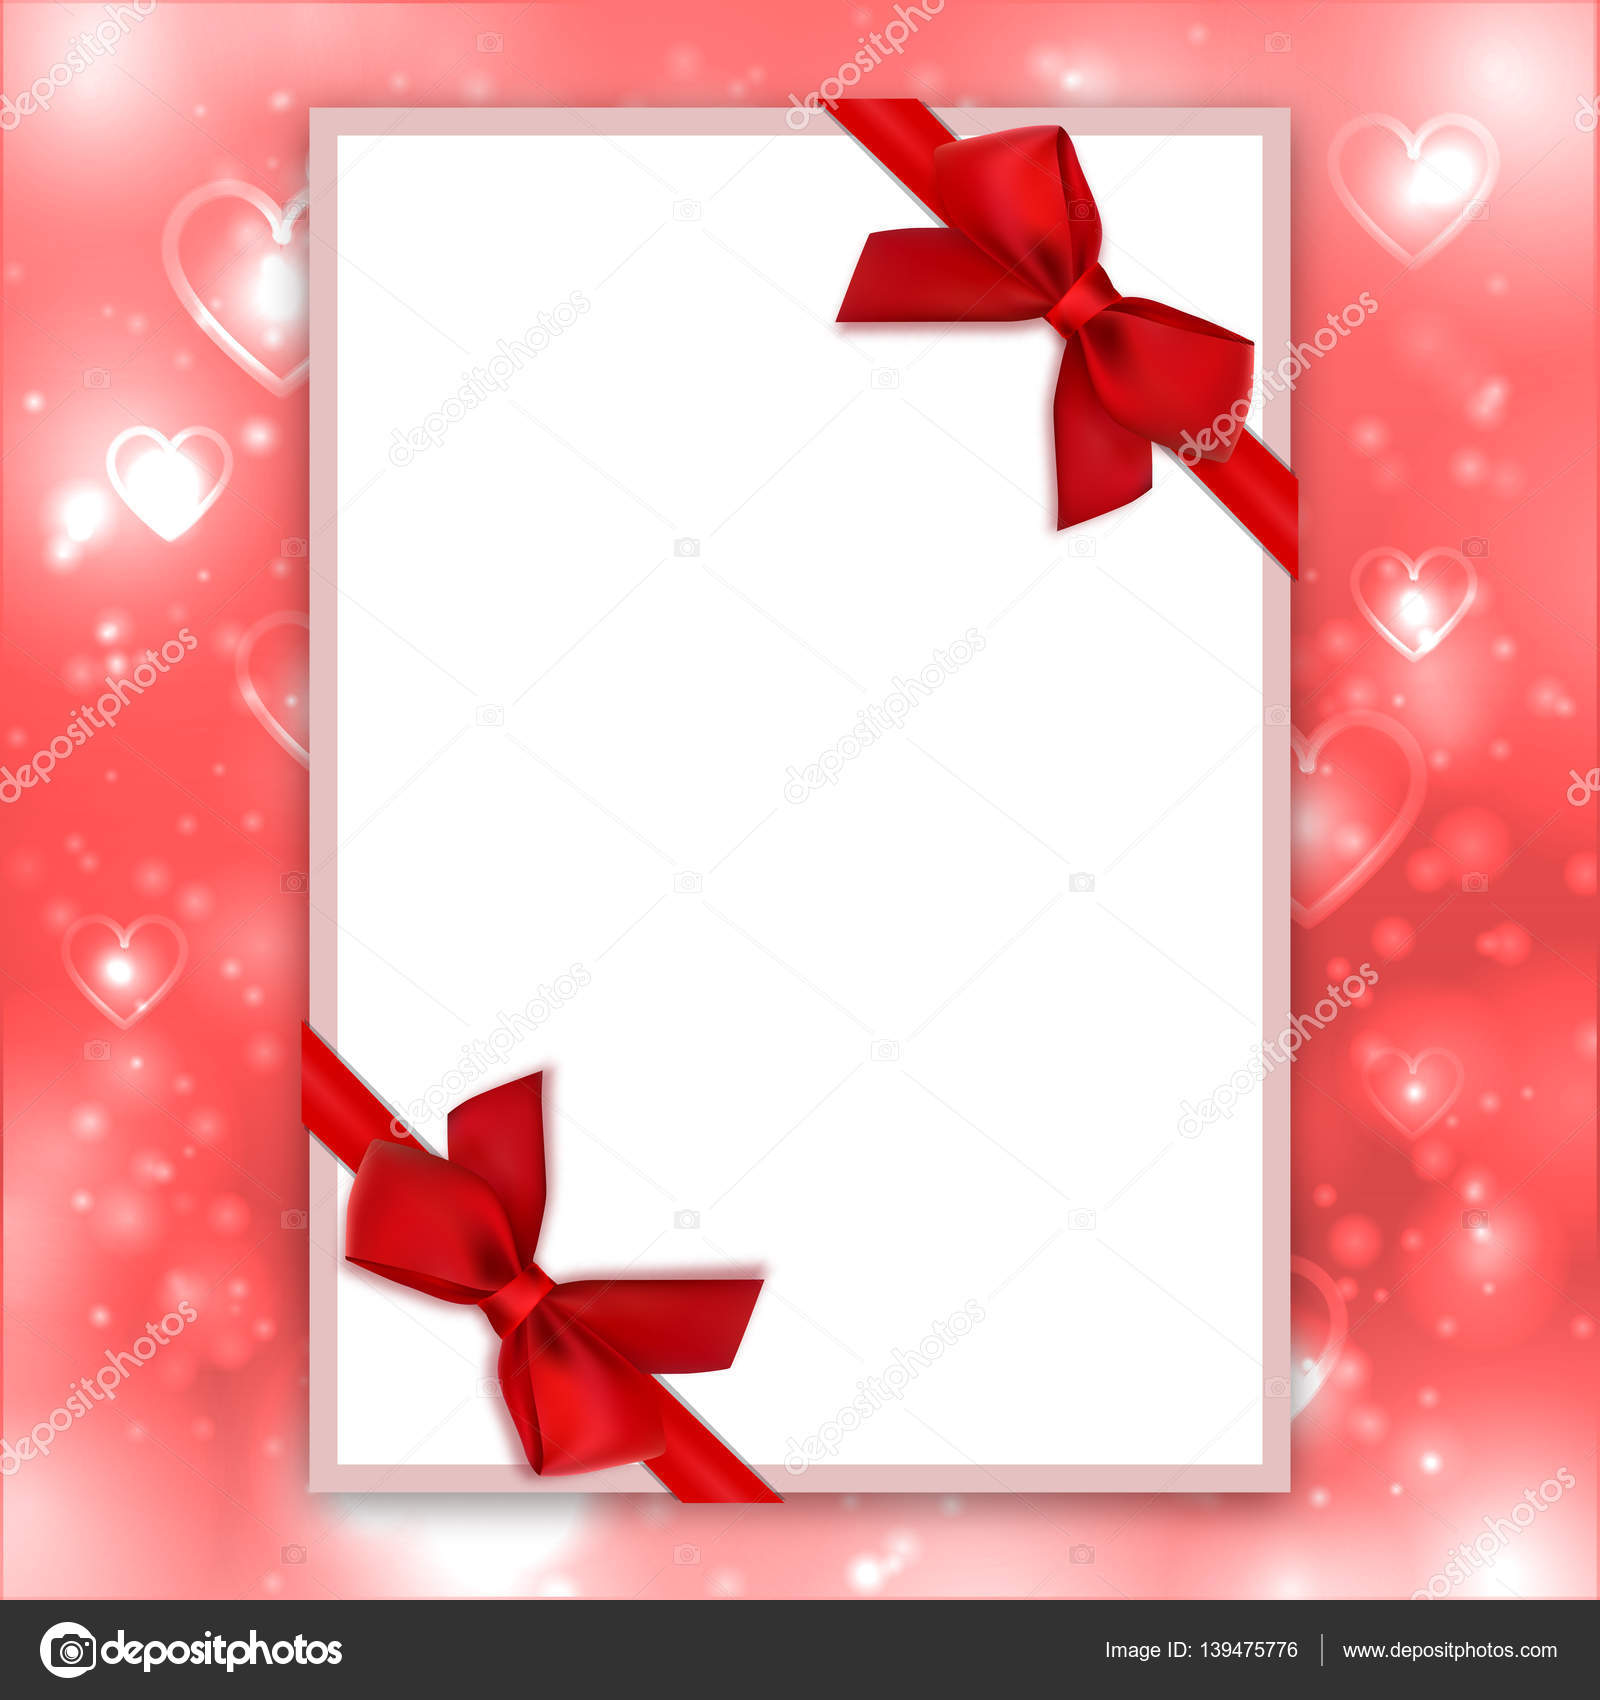 Blank greeting card red bows ribbons love backdrop valentine blank greeting card red bows ribbons love backdrop valentine background stock vector m4hsunfo